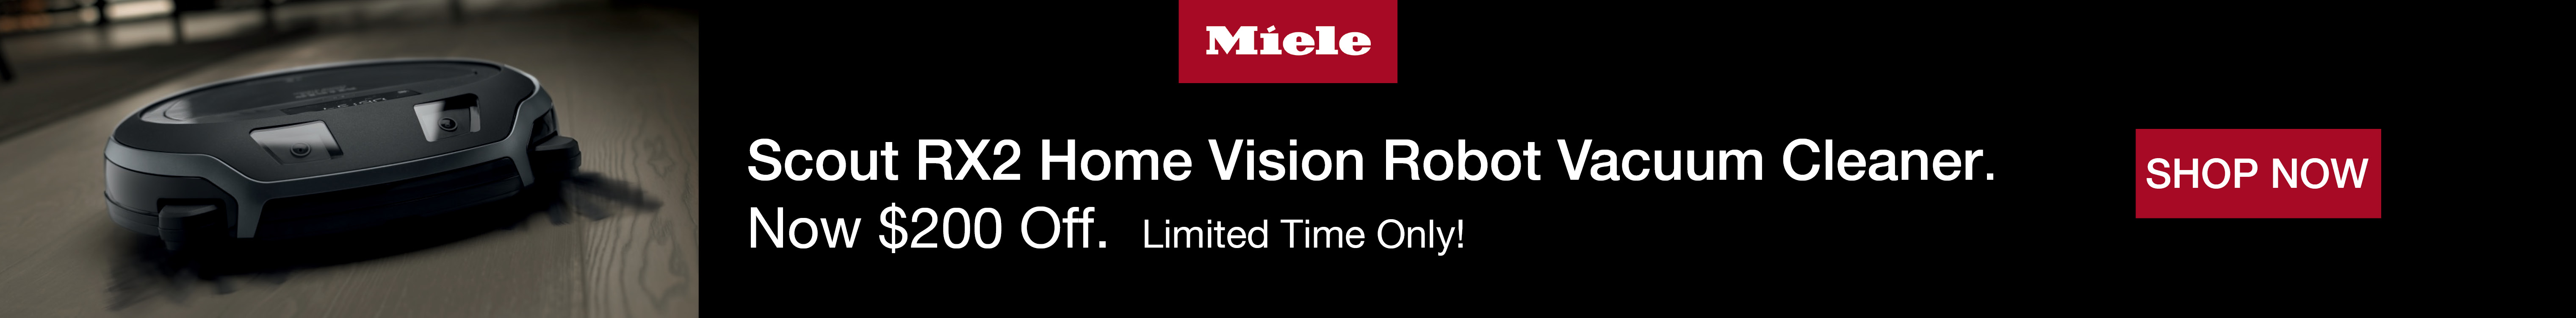 miele-20-percent-off-scout-category-banner-1460x180.jpg